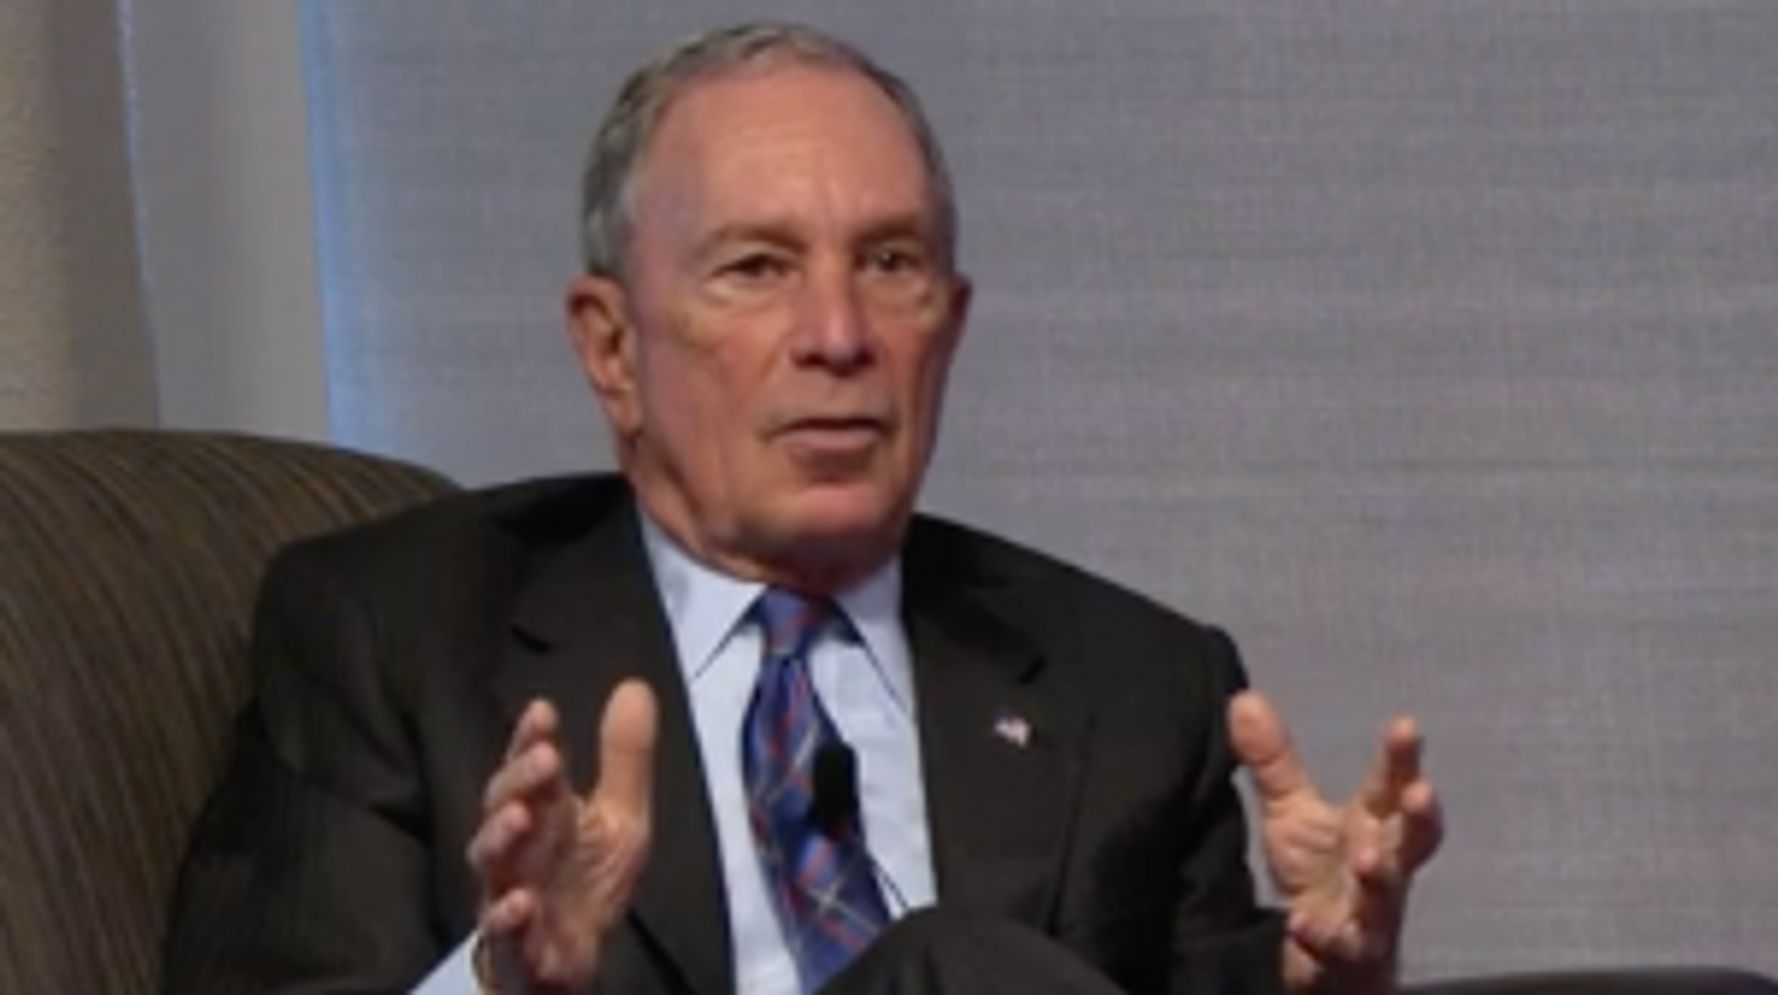 Bloomberg On Ex-Felon Voting Rights In 2018: 'They're Not Going To Vote Anyway'